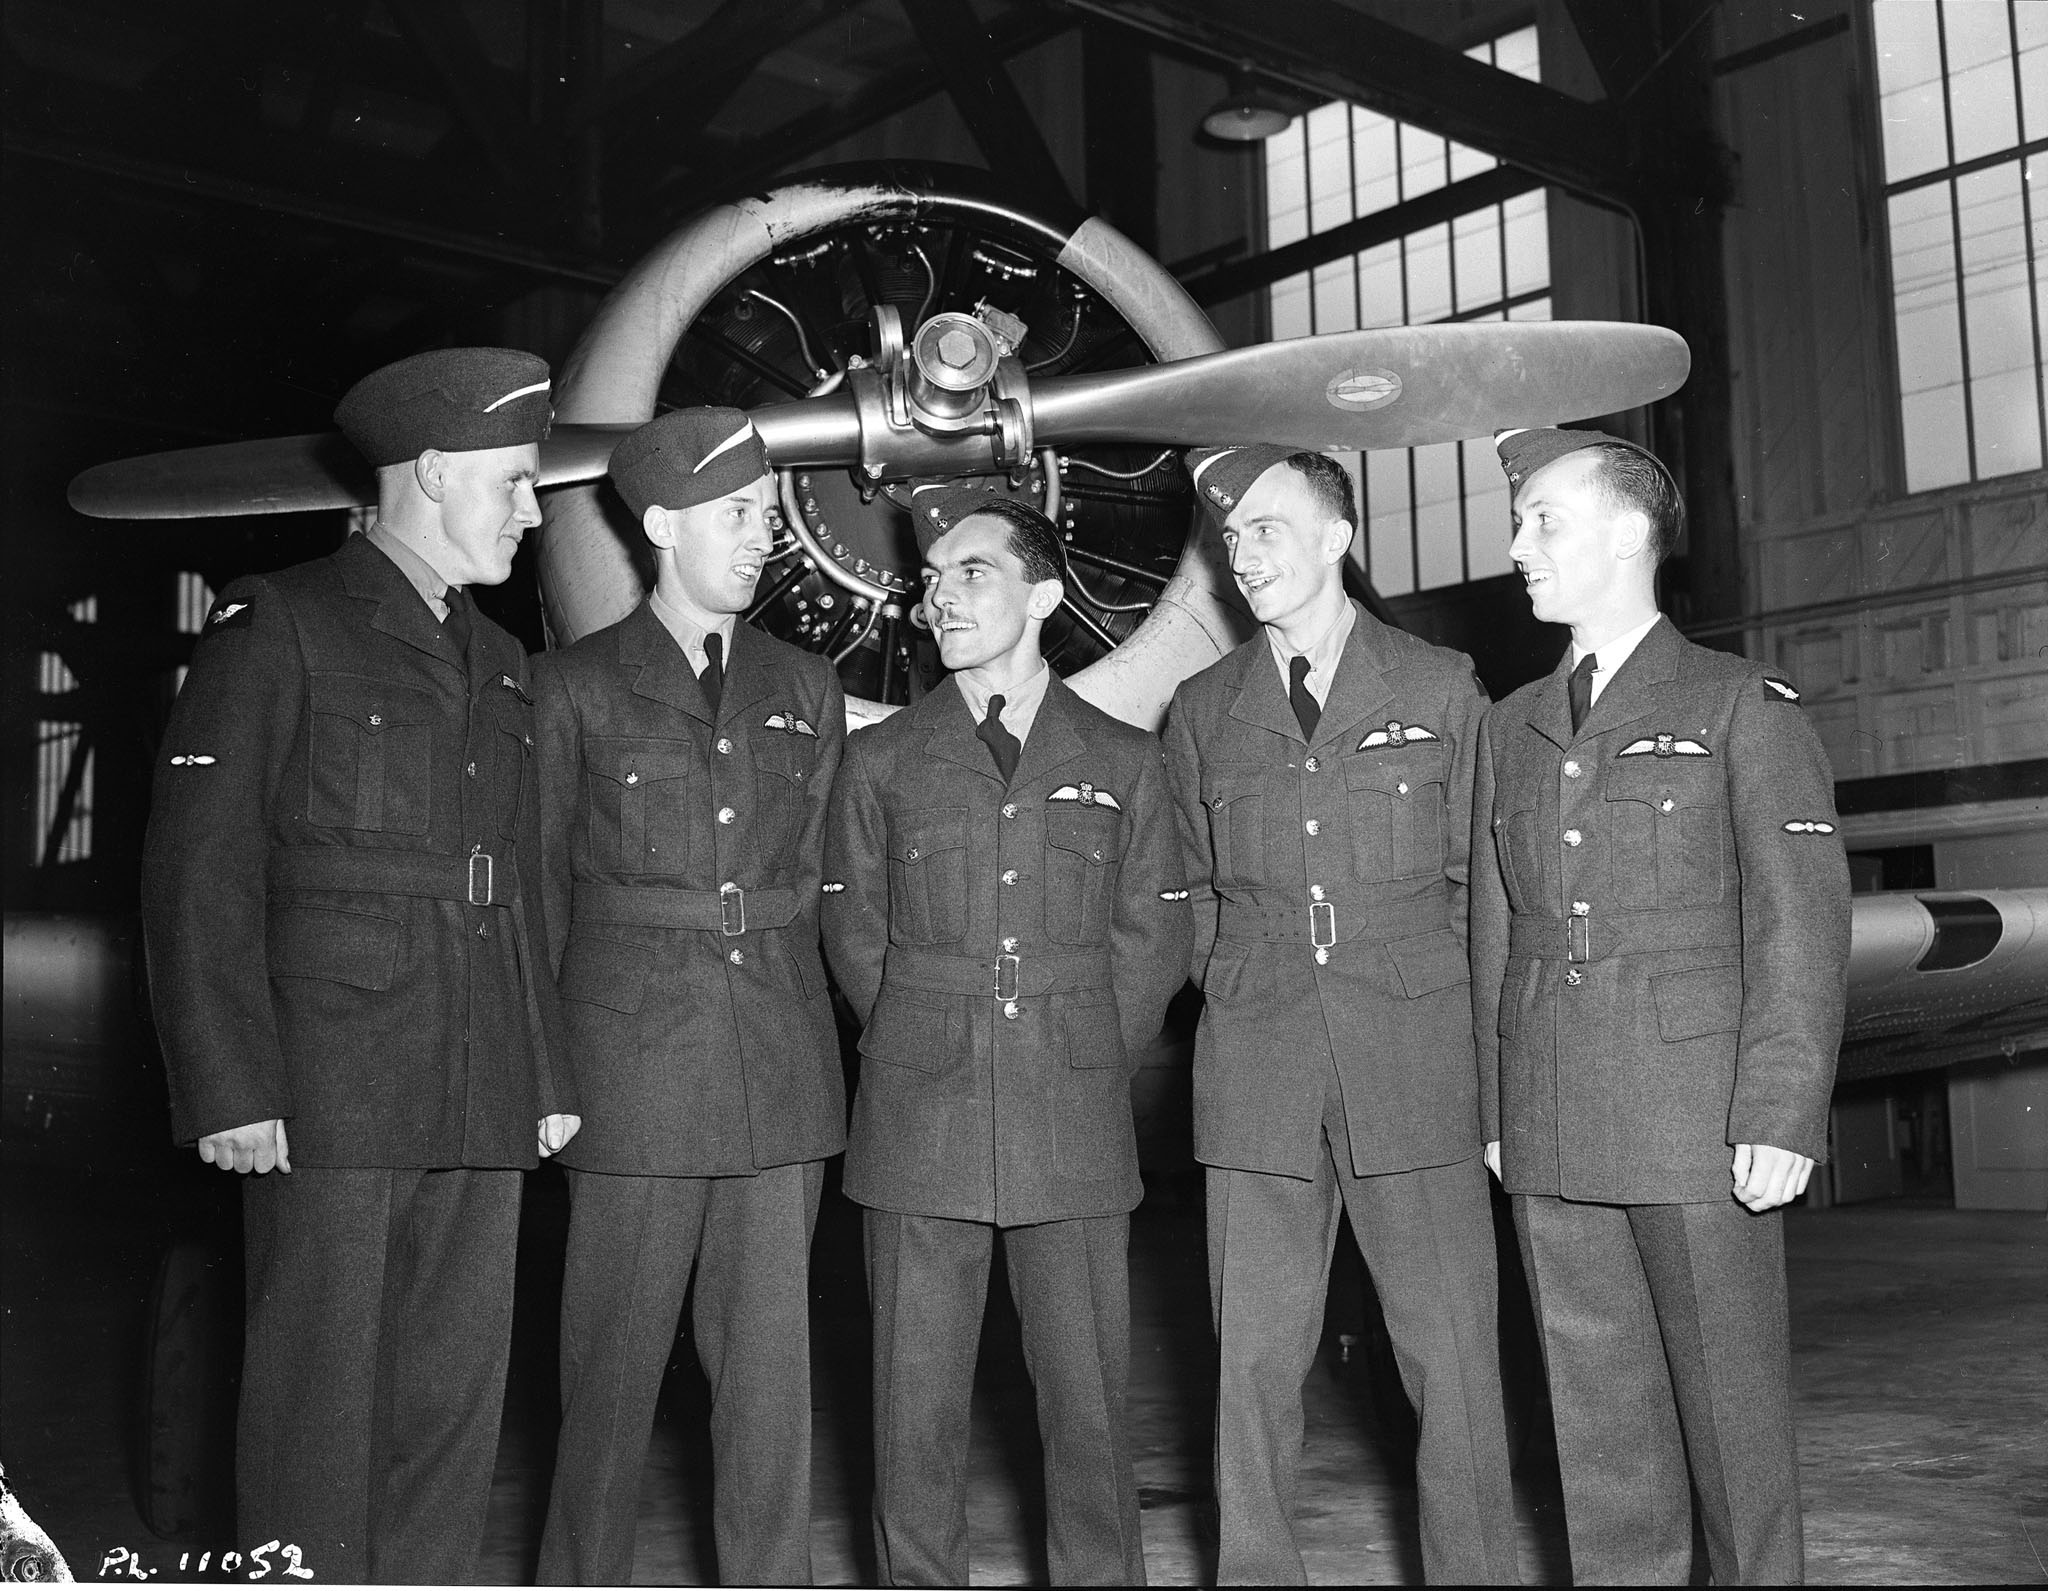 Toronto, Ontario, pilots Morrison (left), Nixon, Regan, Richards and Riddell stand for a photograph to commemorate their graduation from RCAF No. 2 Service Flying Training School at Uplands, Ontario, on August 28, 1942. PHOTO: DND Archives